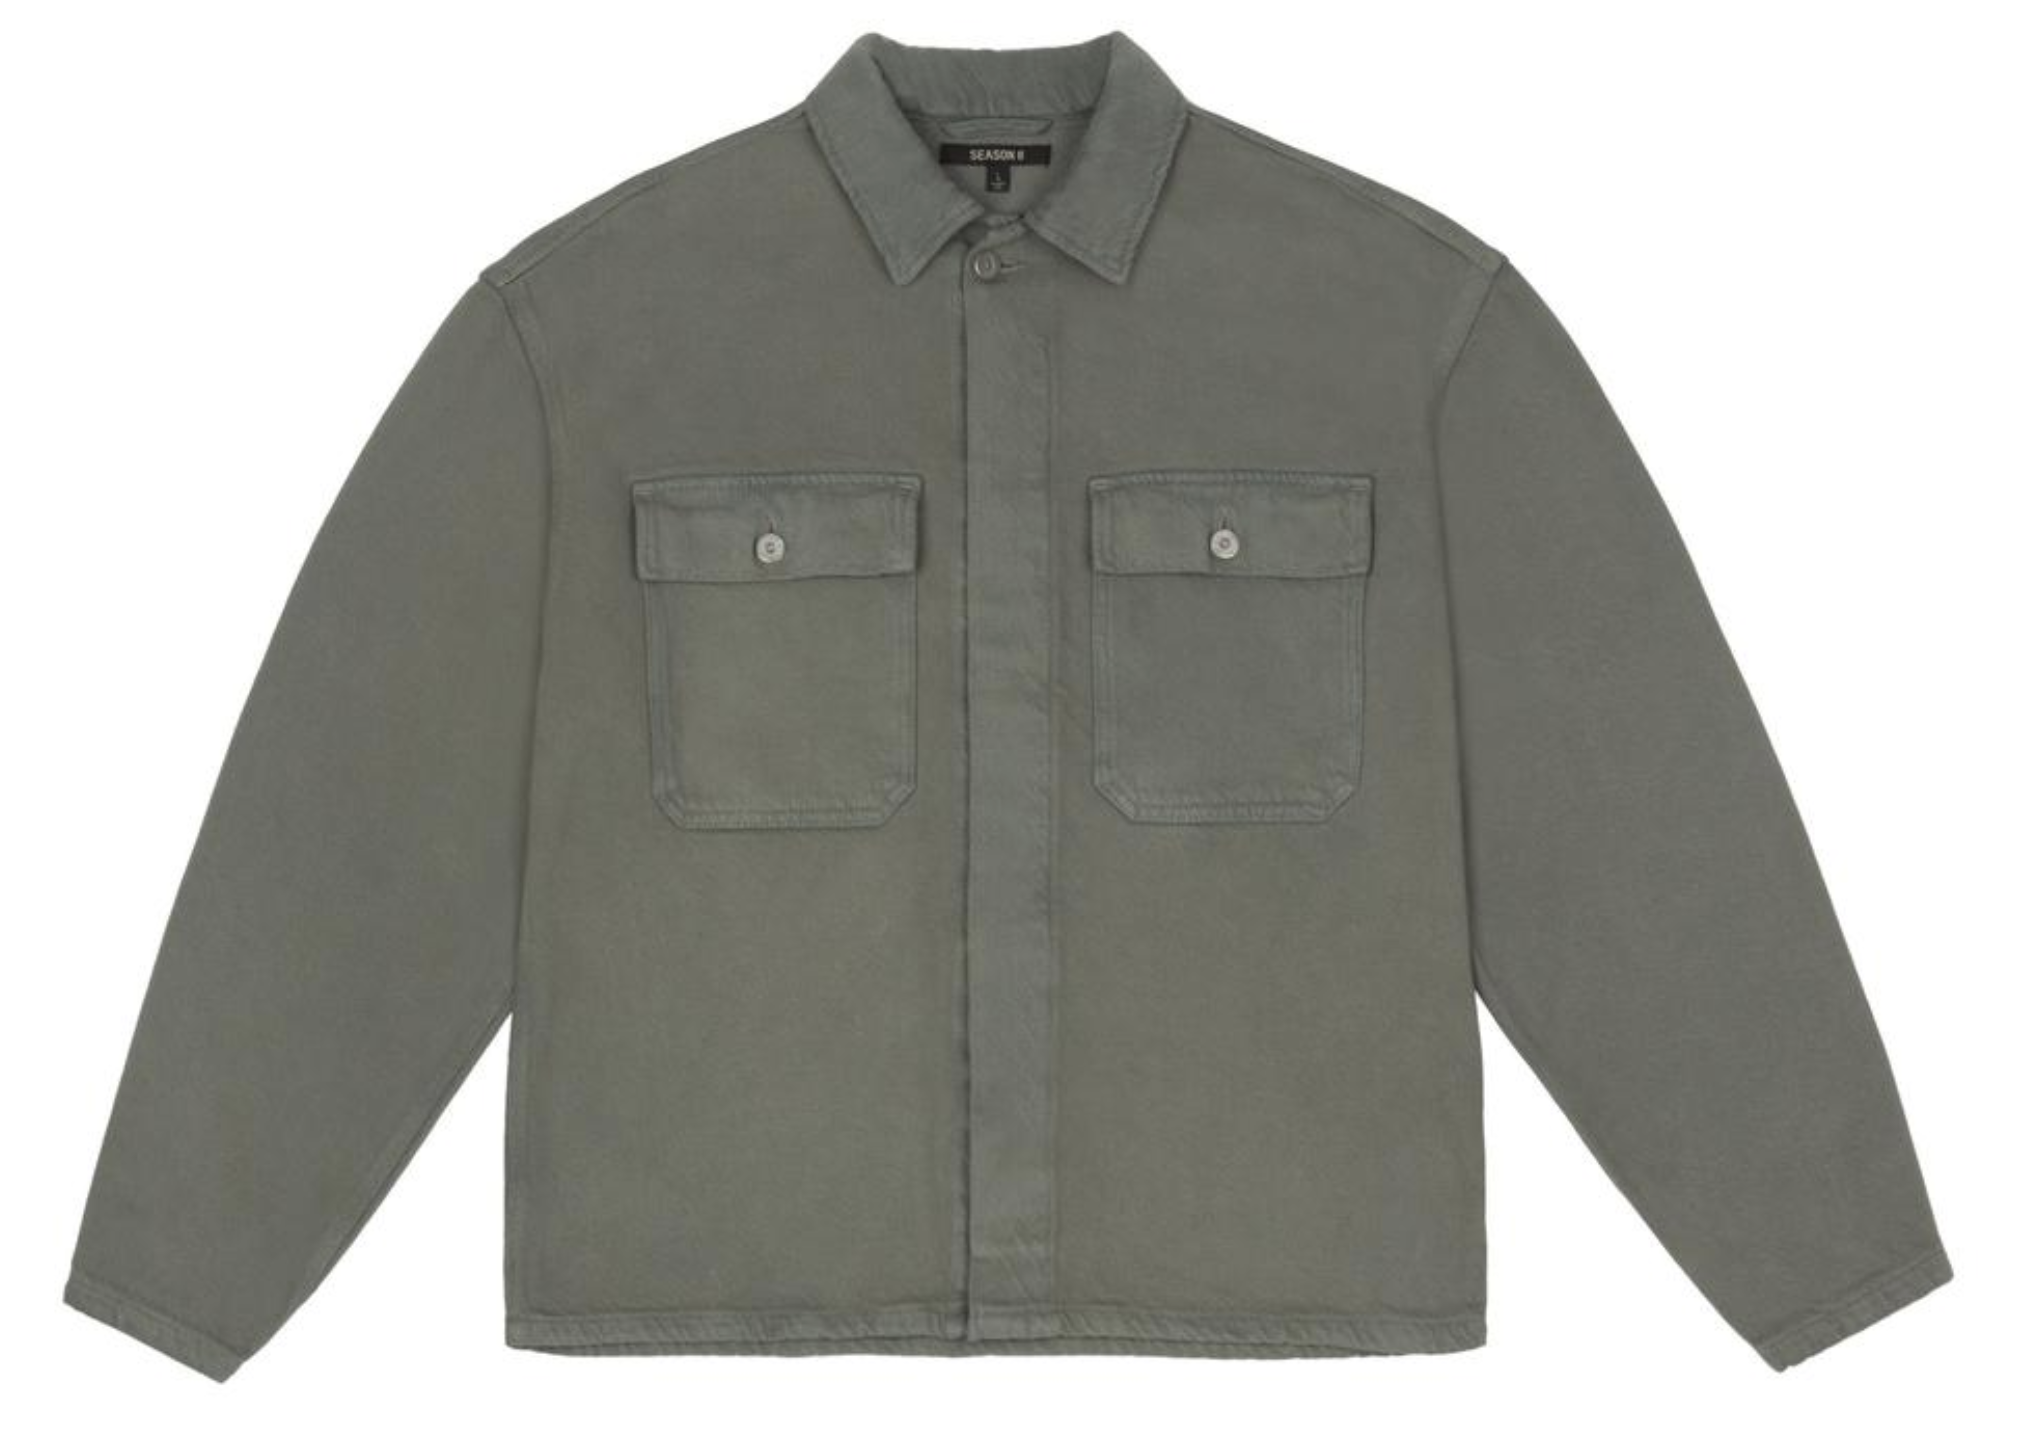 This rugged workwear shirt retails at $500 on the official Yeezy store, which is well worth the price of not getting handcuffed by security in front of the elevators, again.